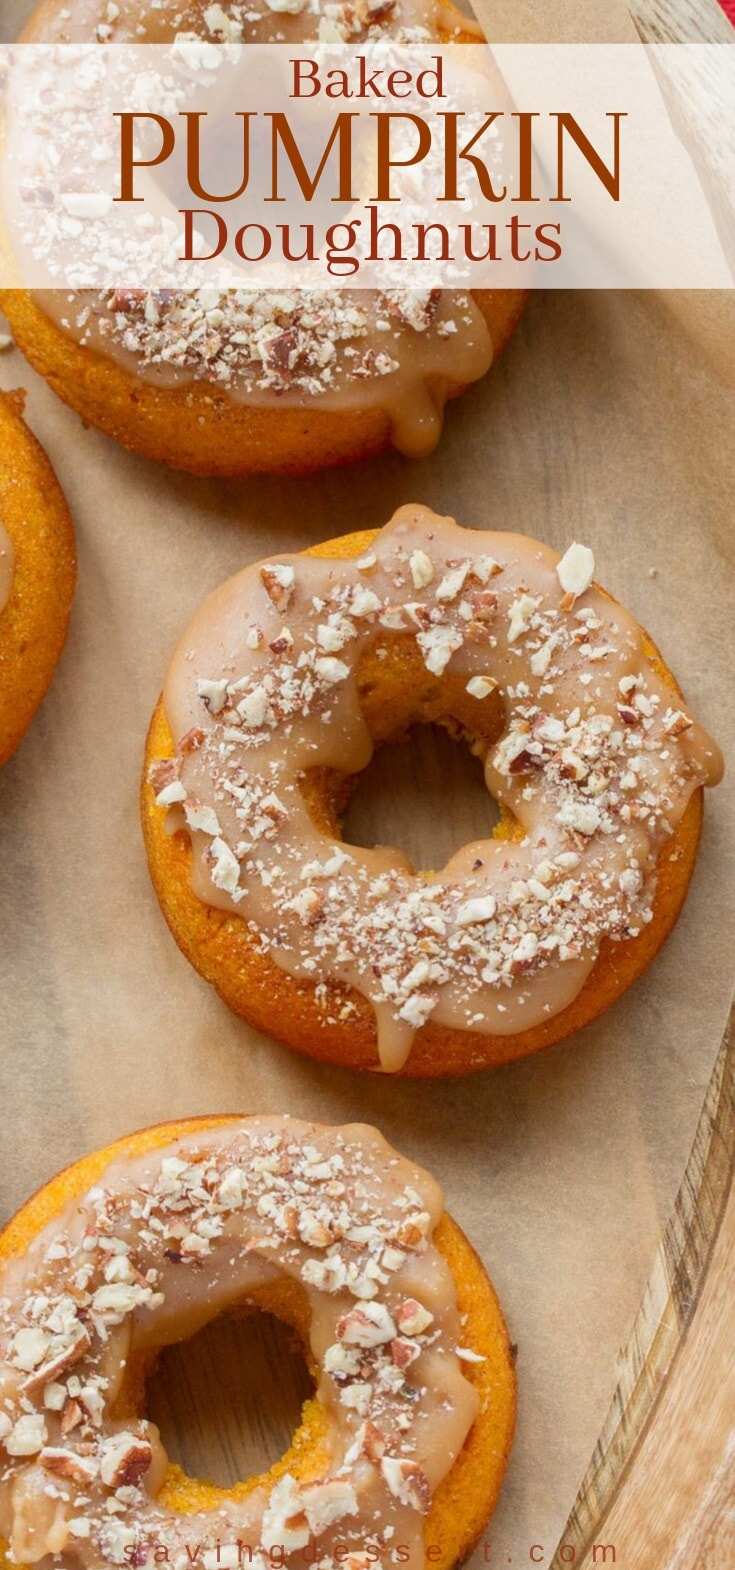 A tray of baked pumpkin doughnuts with caramel icing and chopped nuts